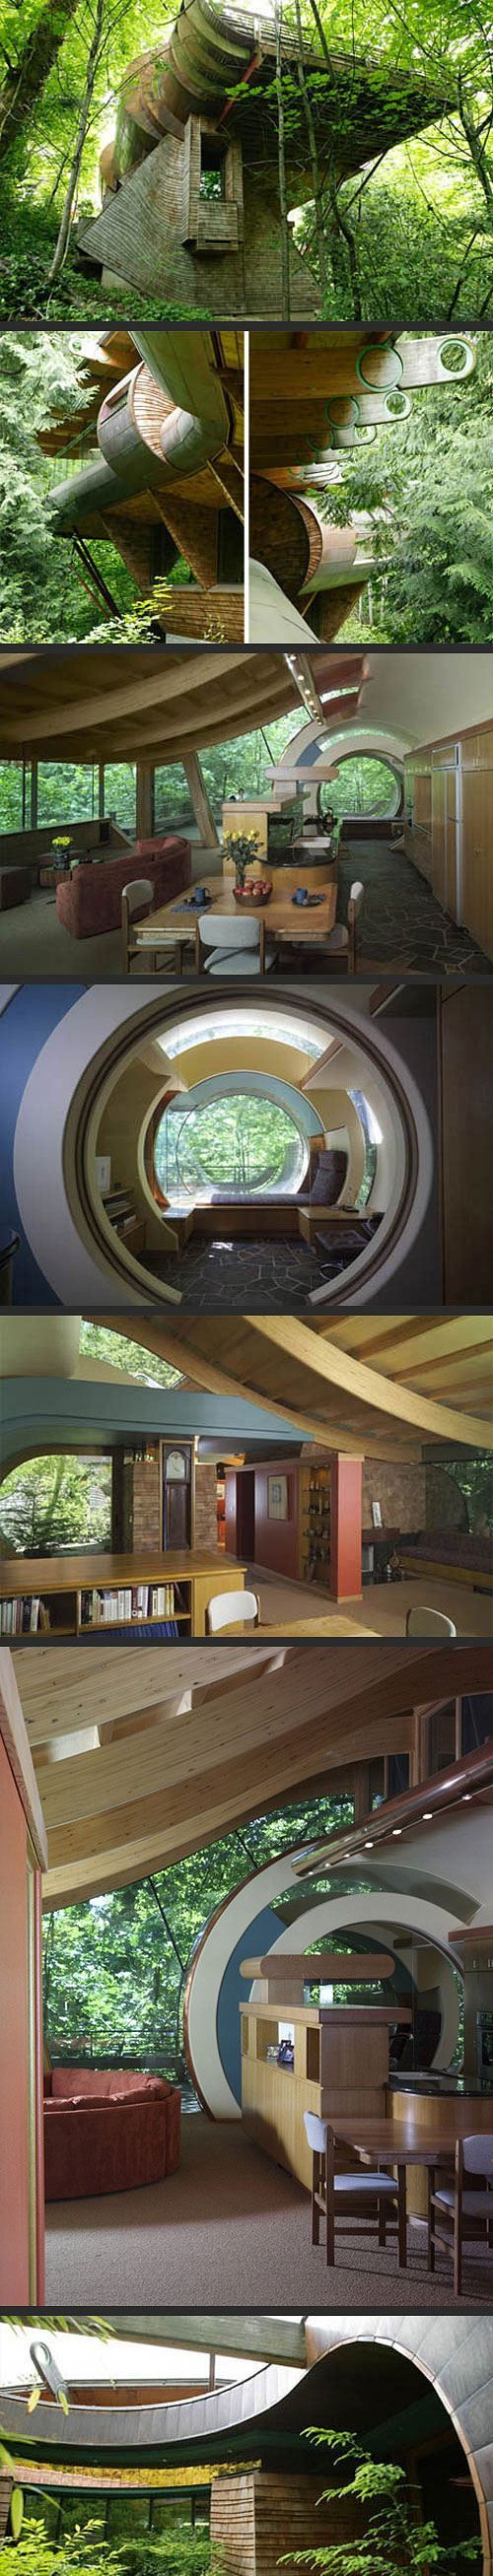 Futuristic Ideas for your home #expensivehomes #contemproaryfurniture #homefurnishings